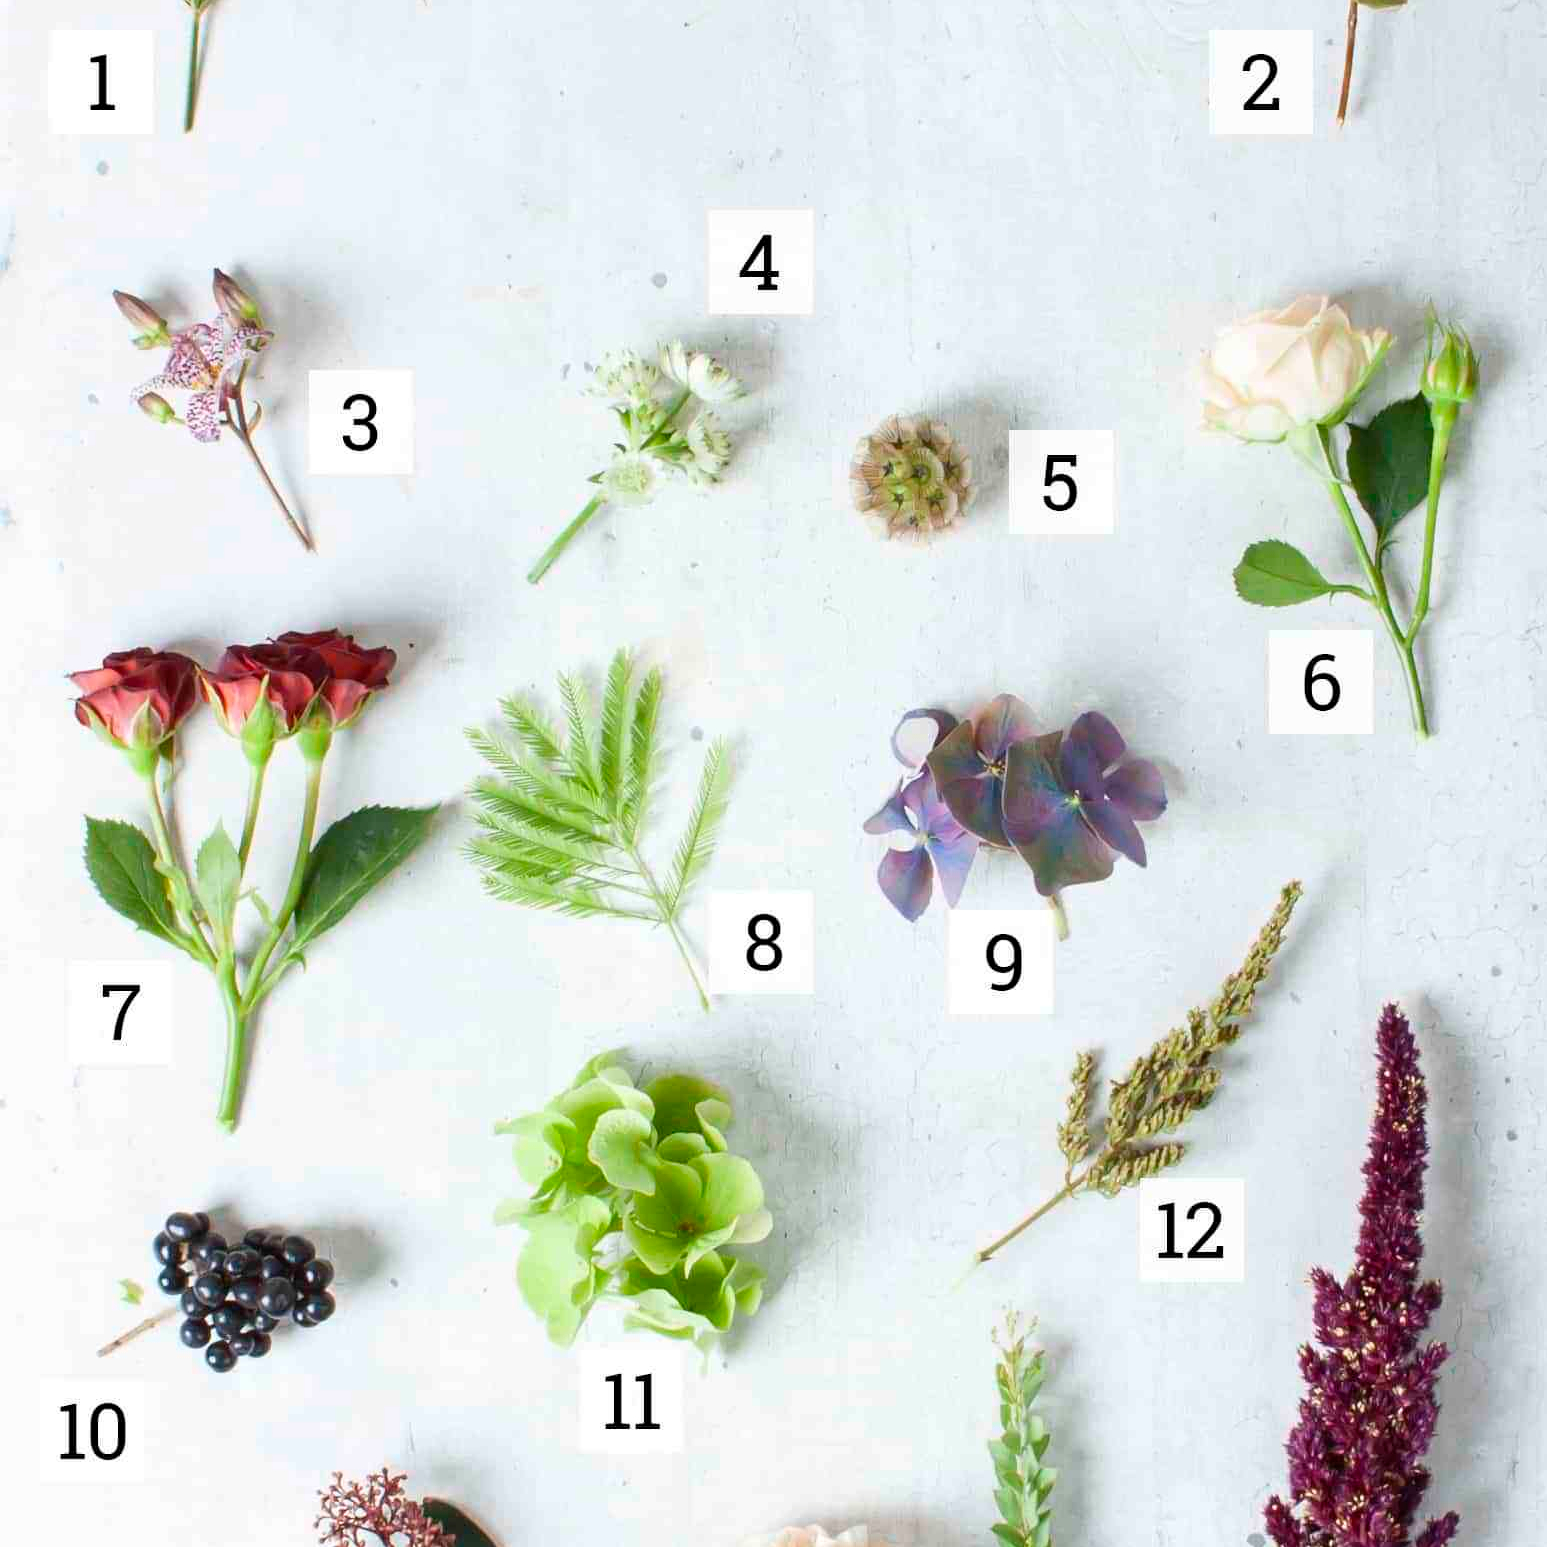 Discover our Favourite Fall Flowers